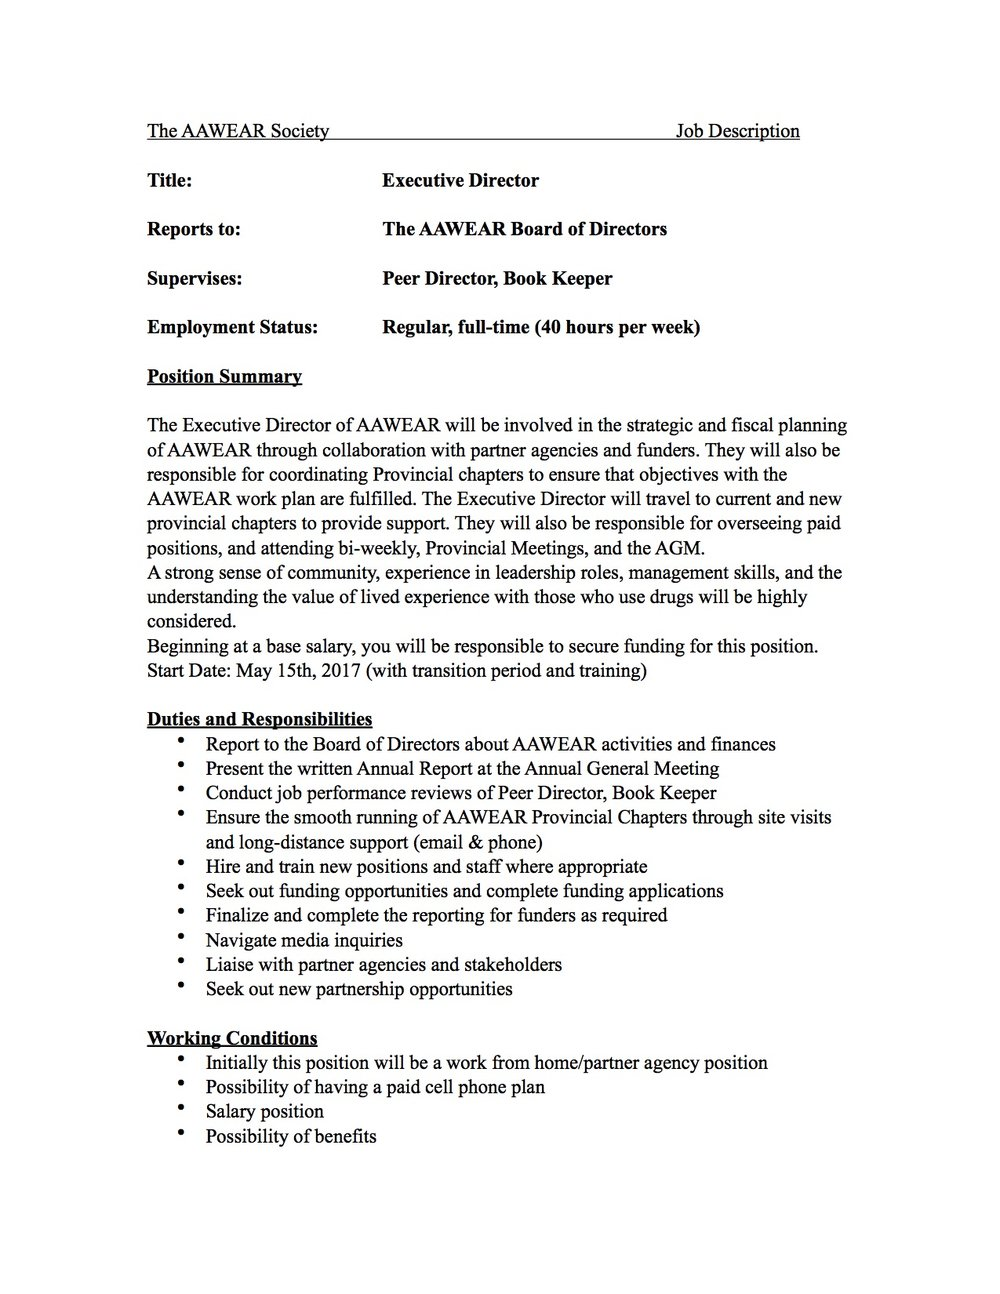 Executive Director Job Posting AAWEAR – Executive Director Job Description